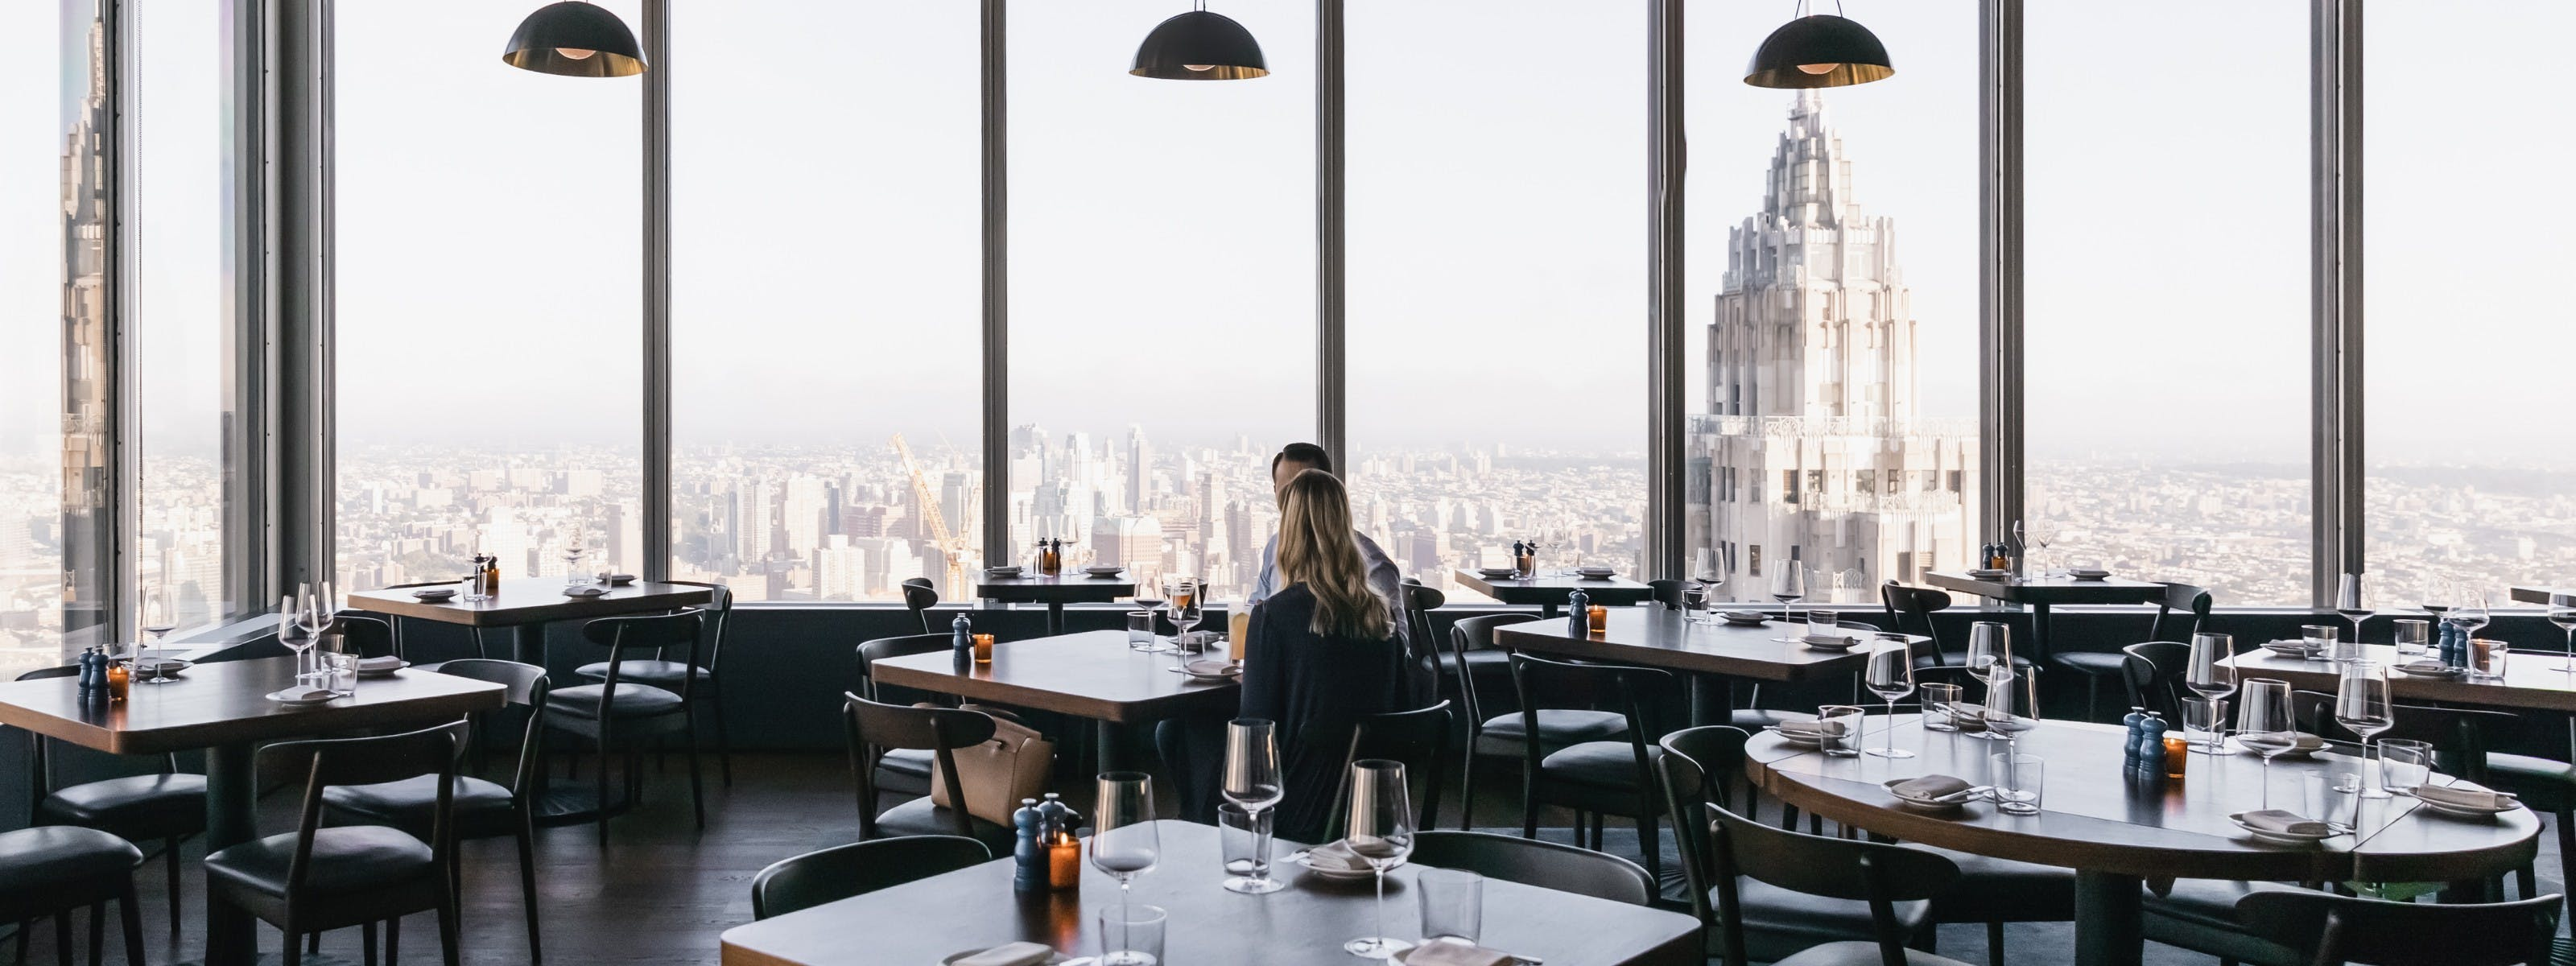 The Best Places To Eat In The Financial District - New York - The Infatuation